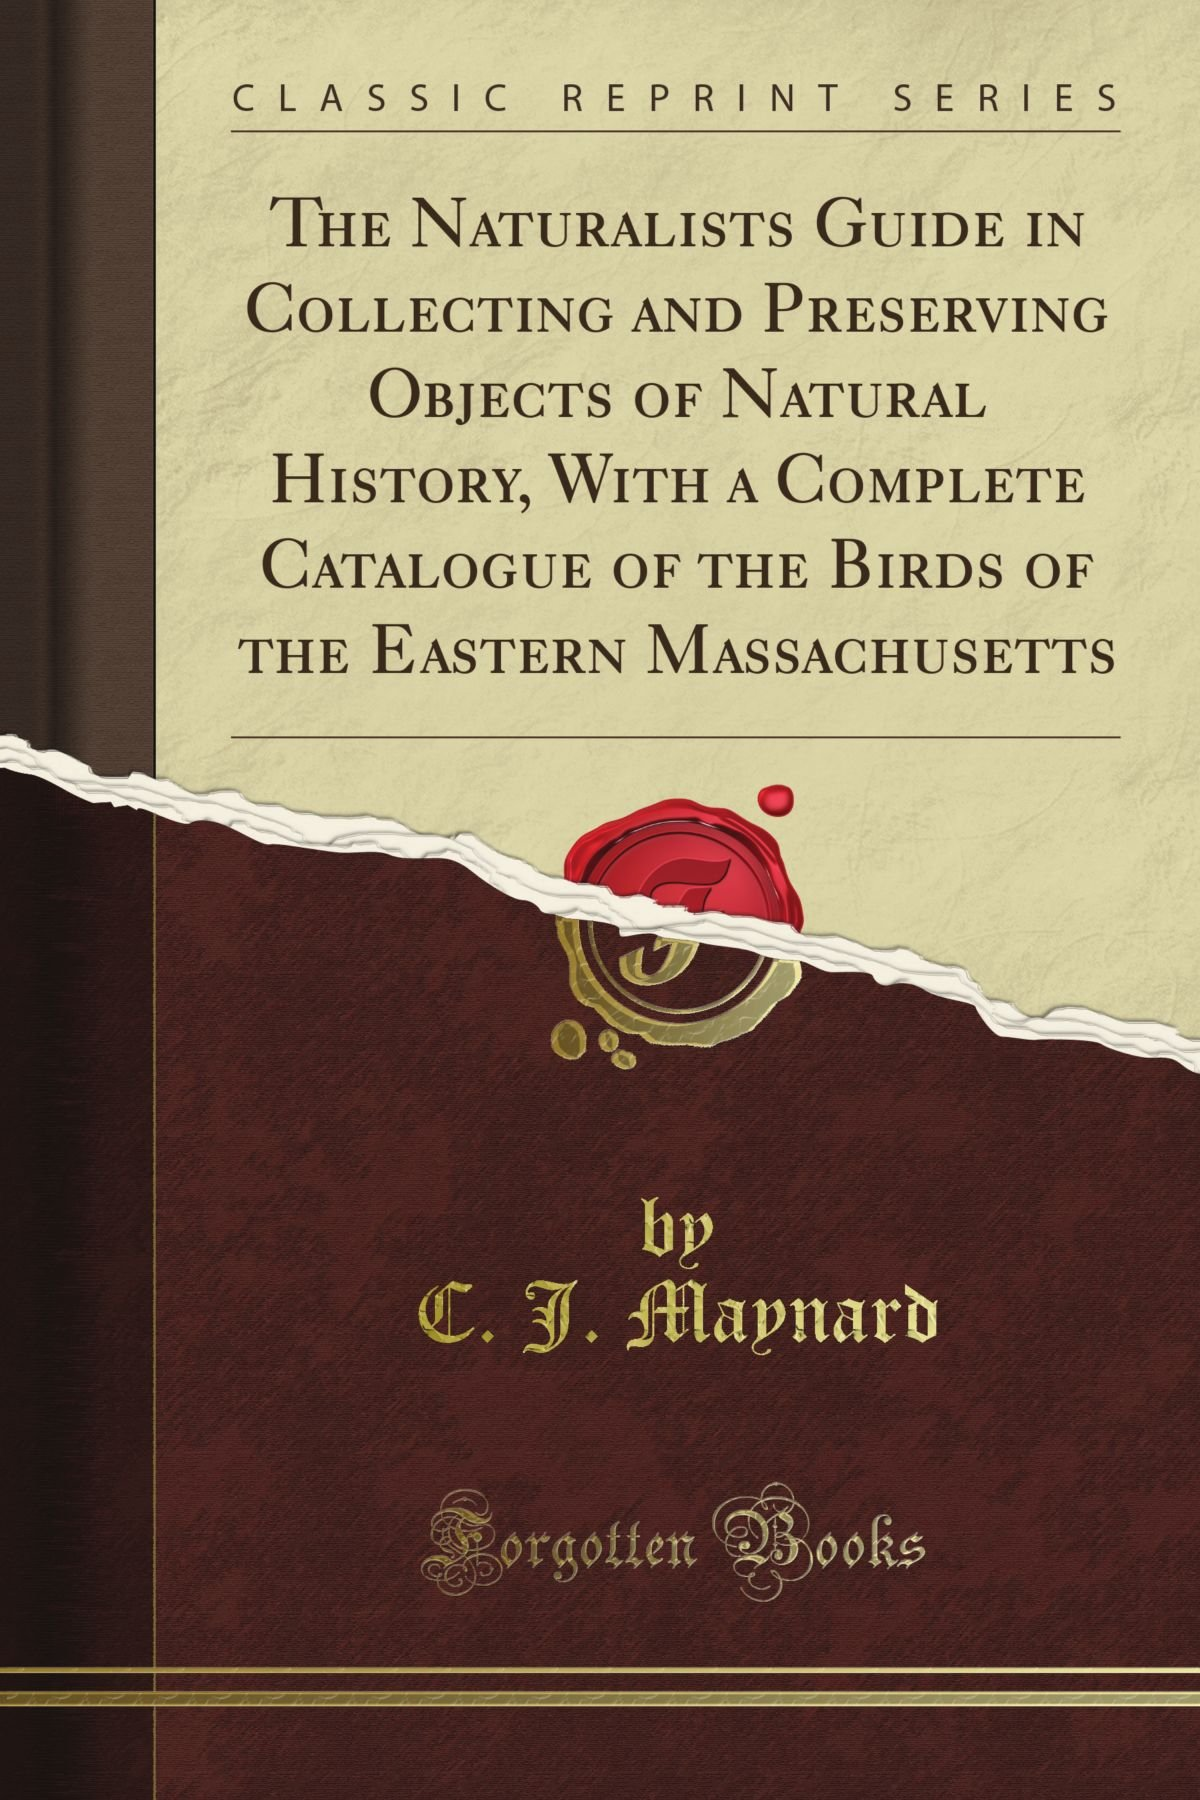 The Naturalist's Guide in Collecting and Preserving Objects of Natural History, With a Complete Catalogue of the Birds of the Eastern Massachusetts (Classic Reprint) pdf